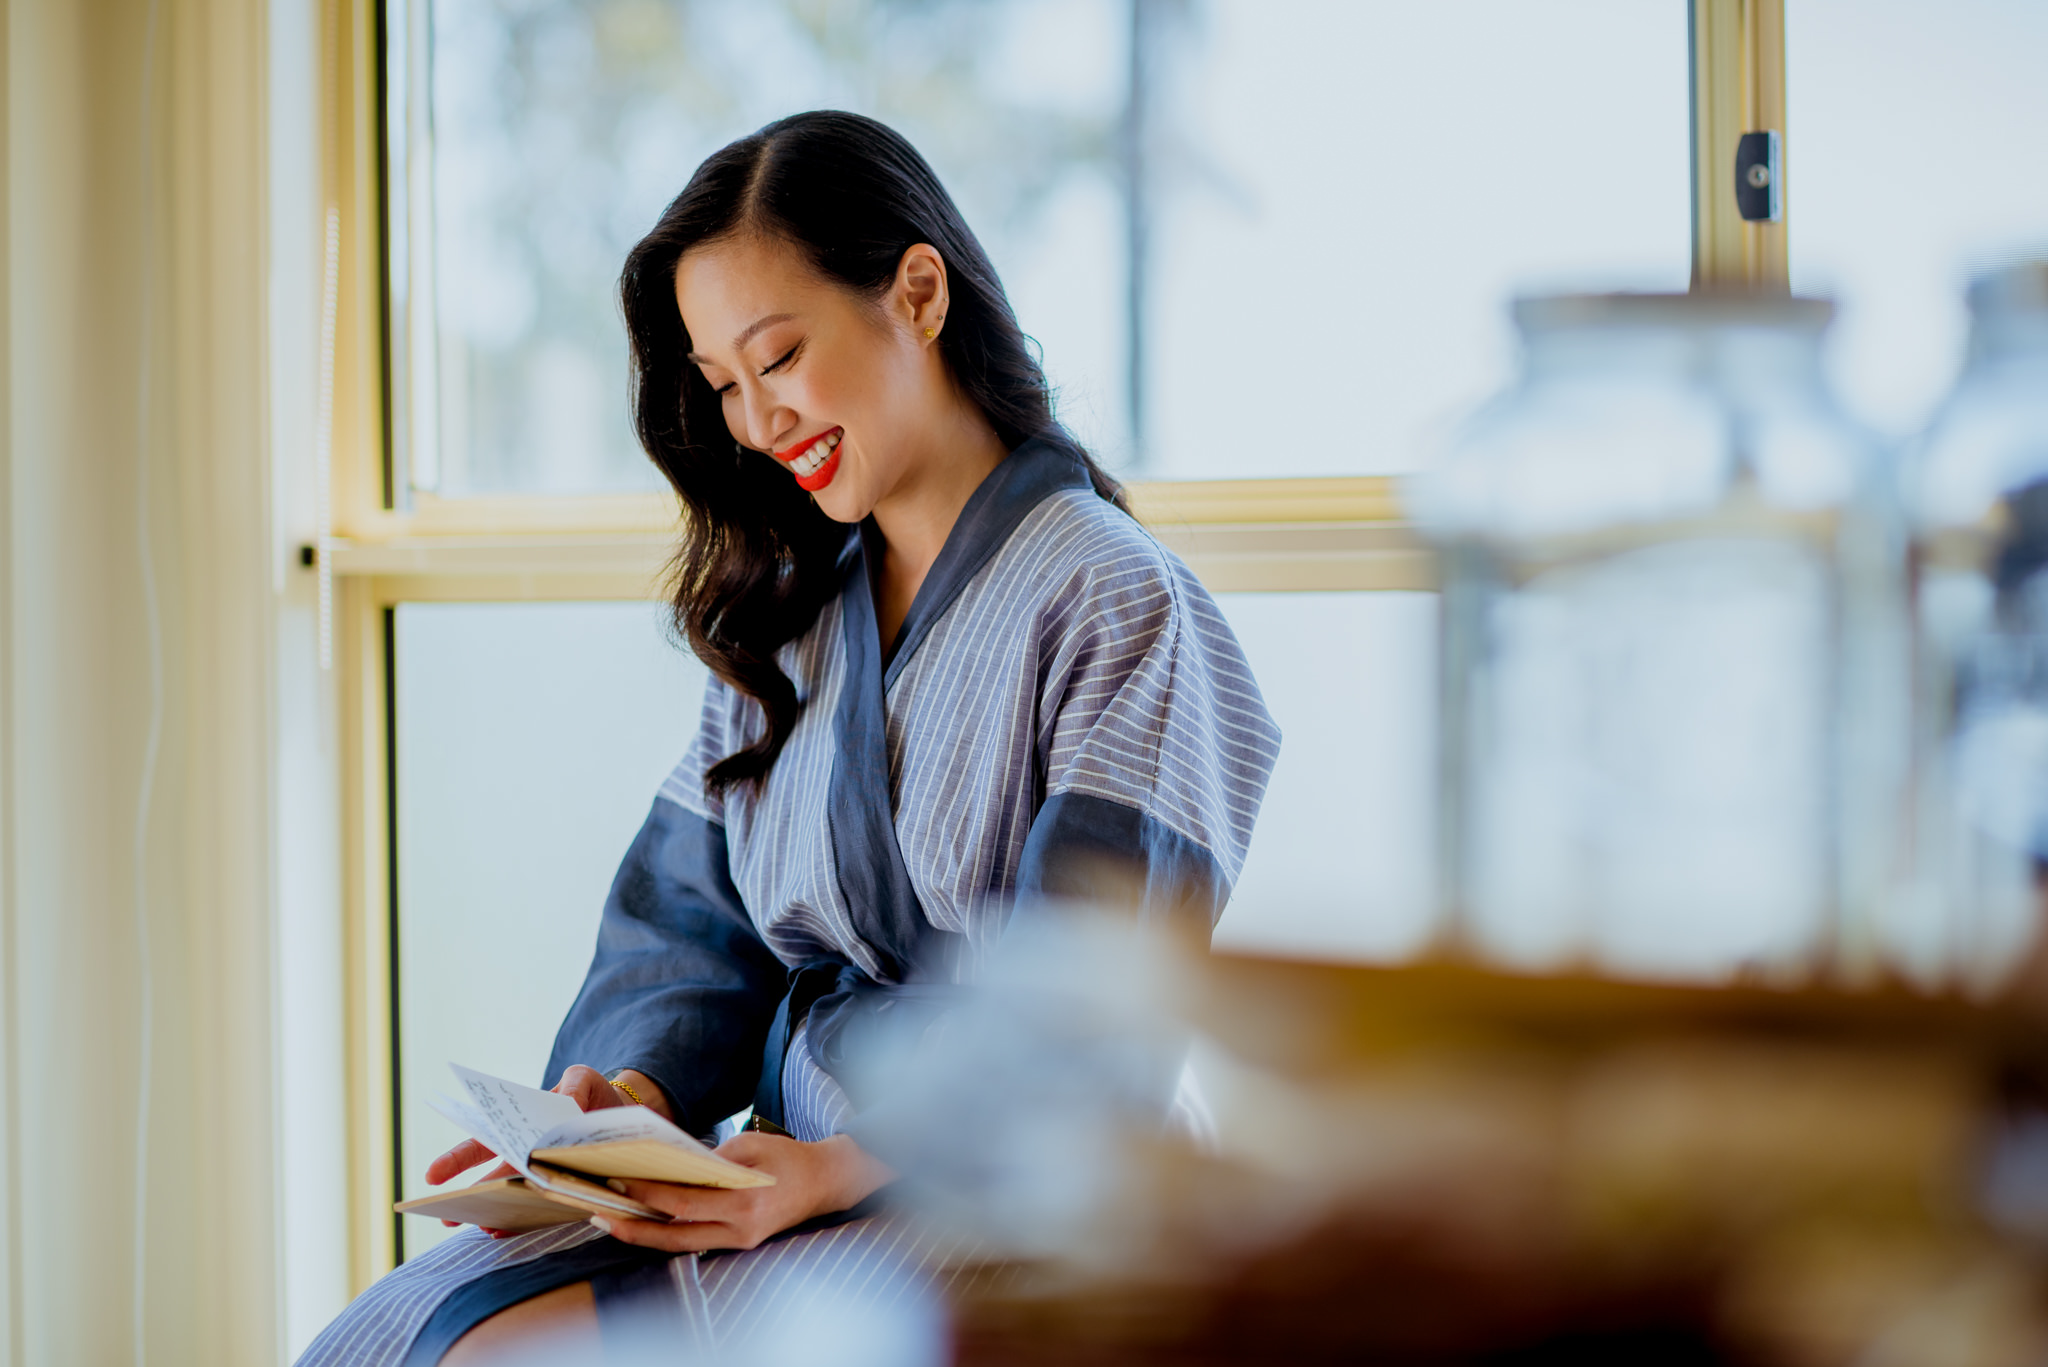 Asian woman smiles as she reads a personalised wooden booklet